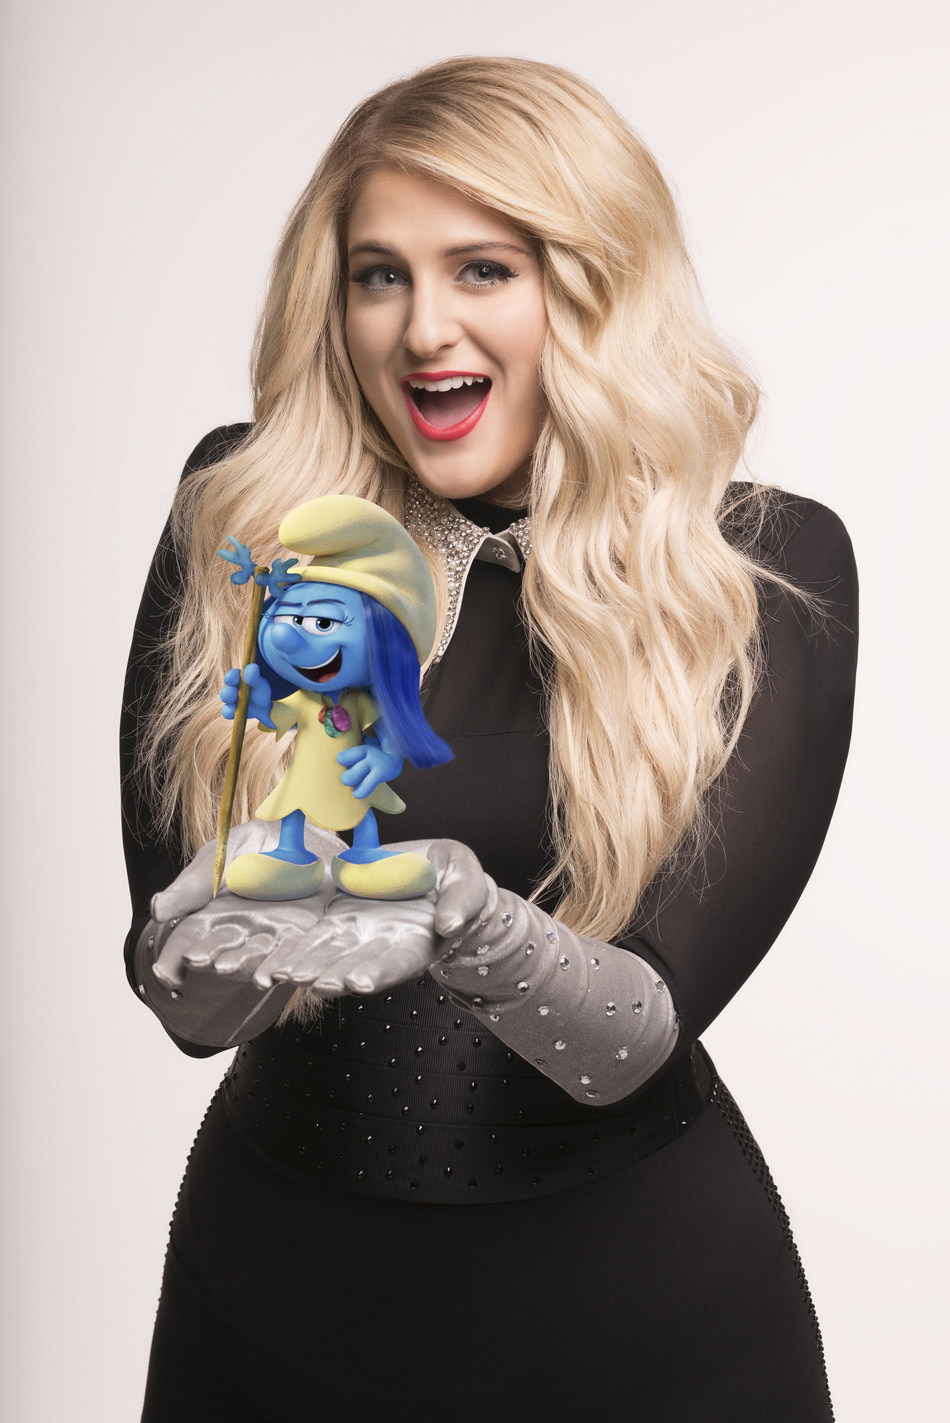 "Grammy(r) Award-winning superstar Meghan Trainor will perform the new song ""I'm a Lady"" and voice the character SmurfMelody in Sony Pictures Animation's new film Smurfs: The Lost Village."